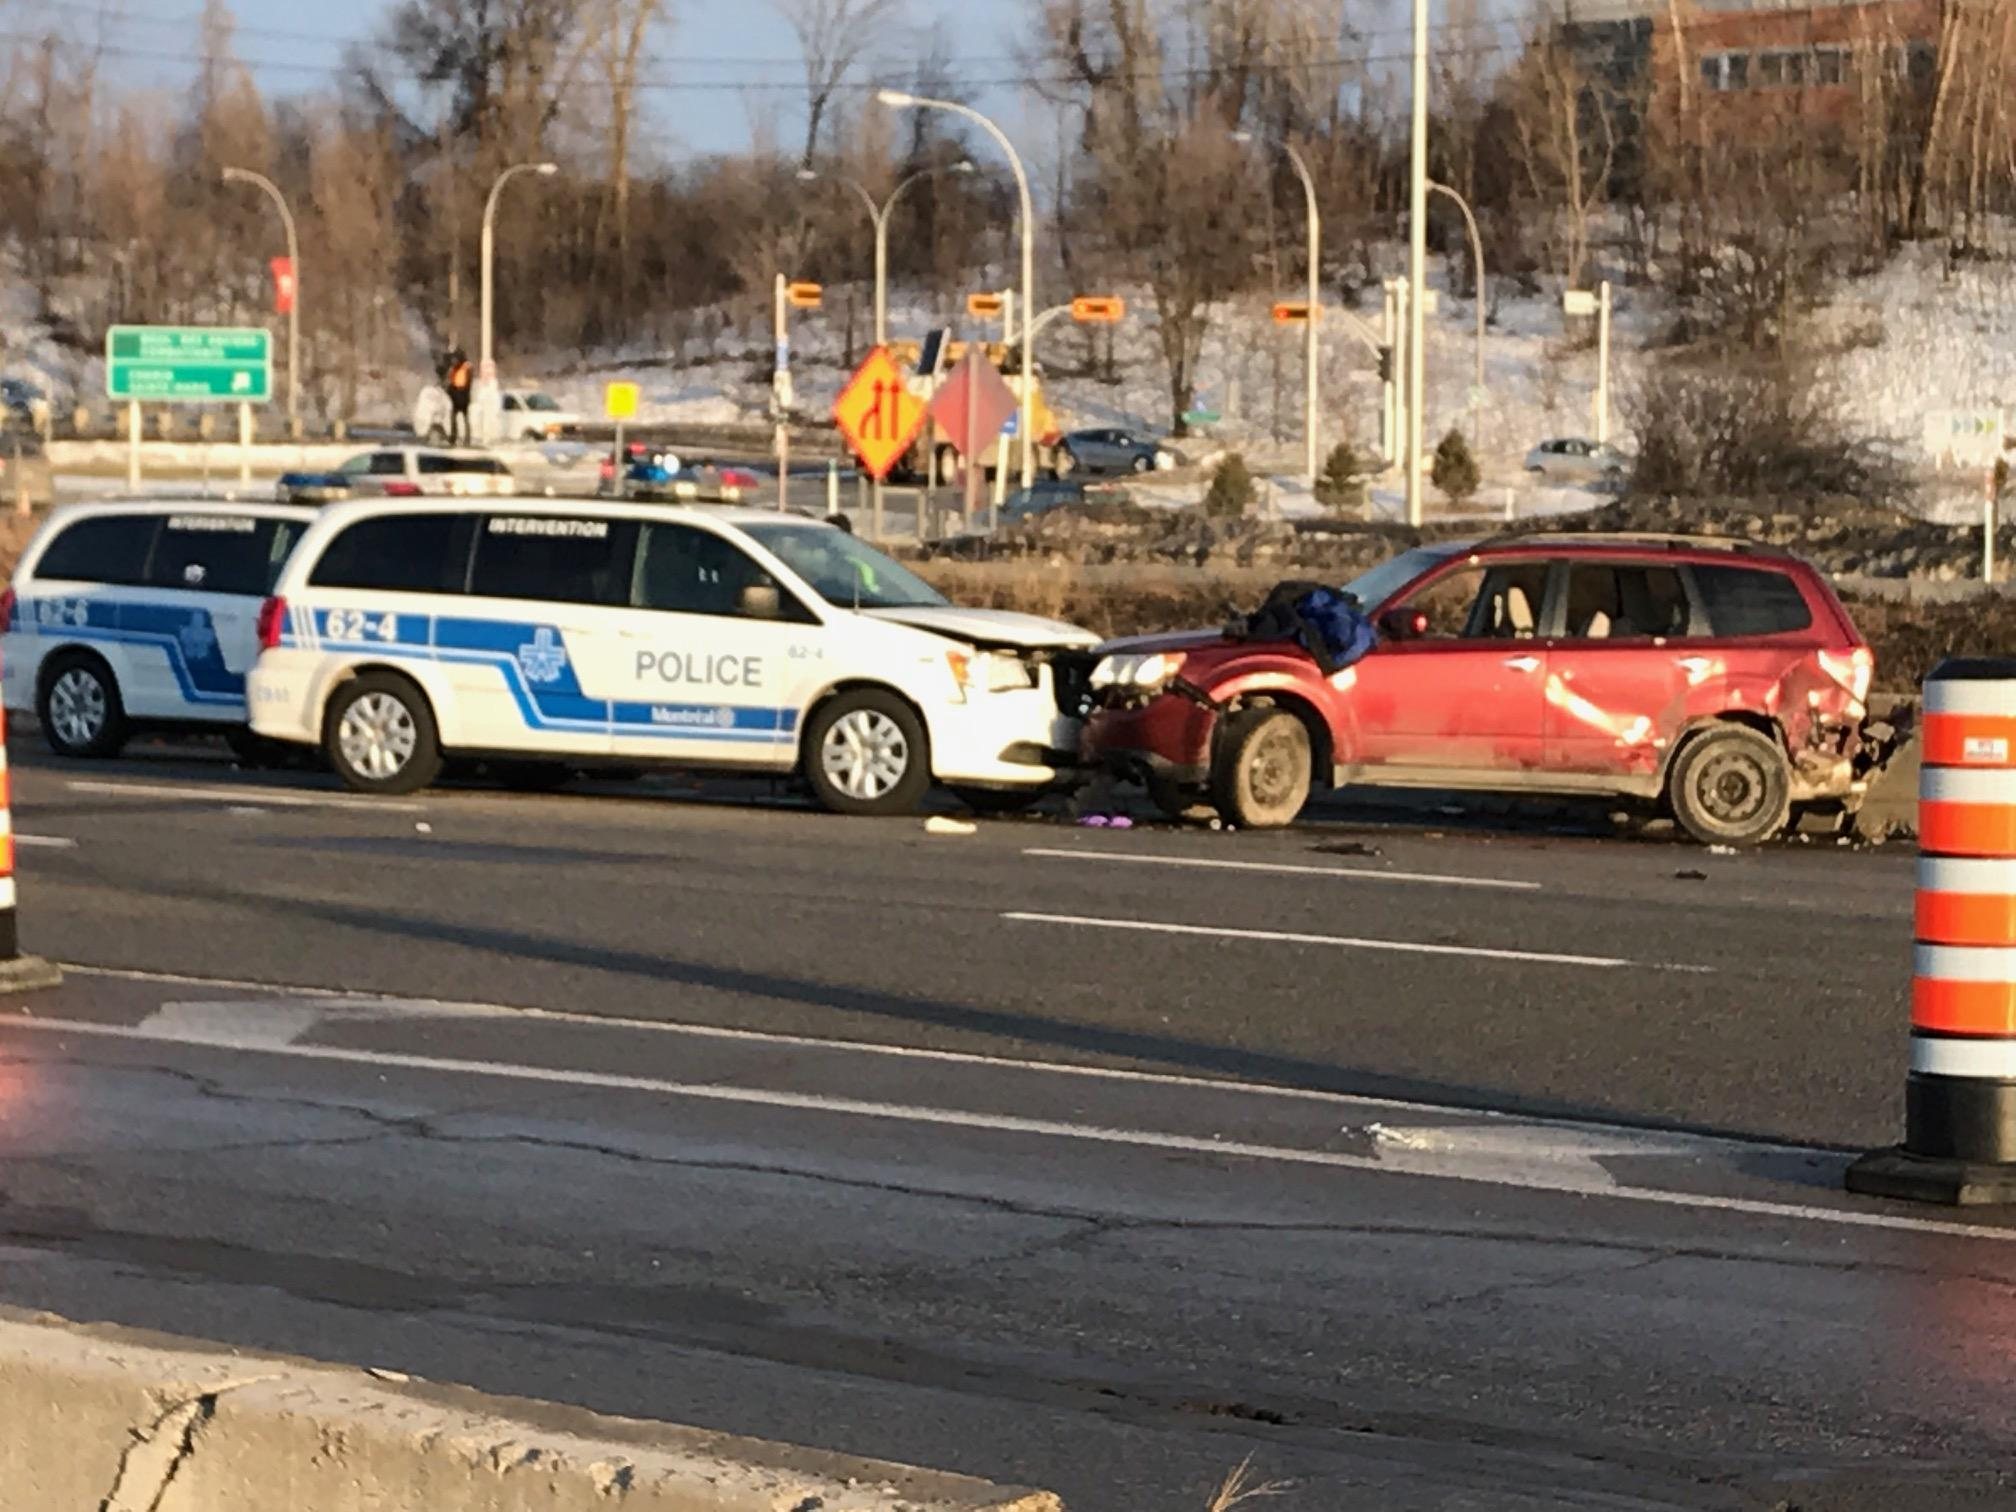 Police shooting leads to high-speed chase on the West Island